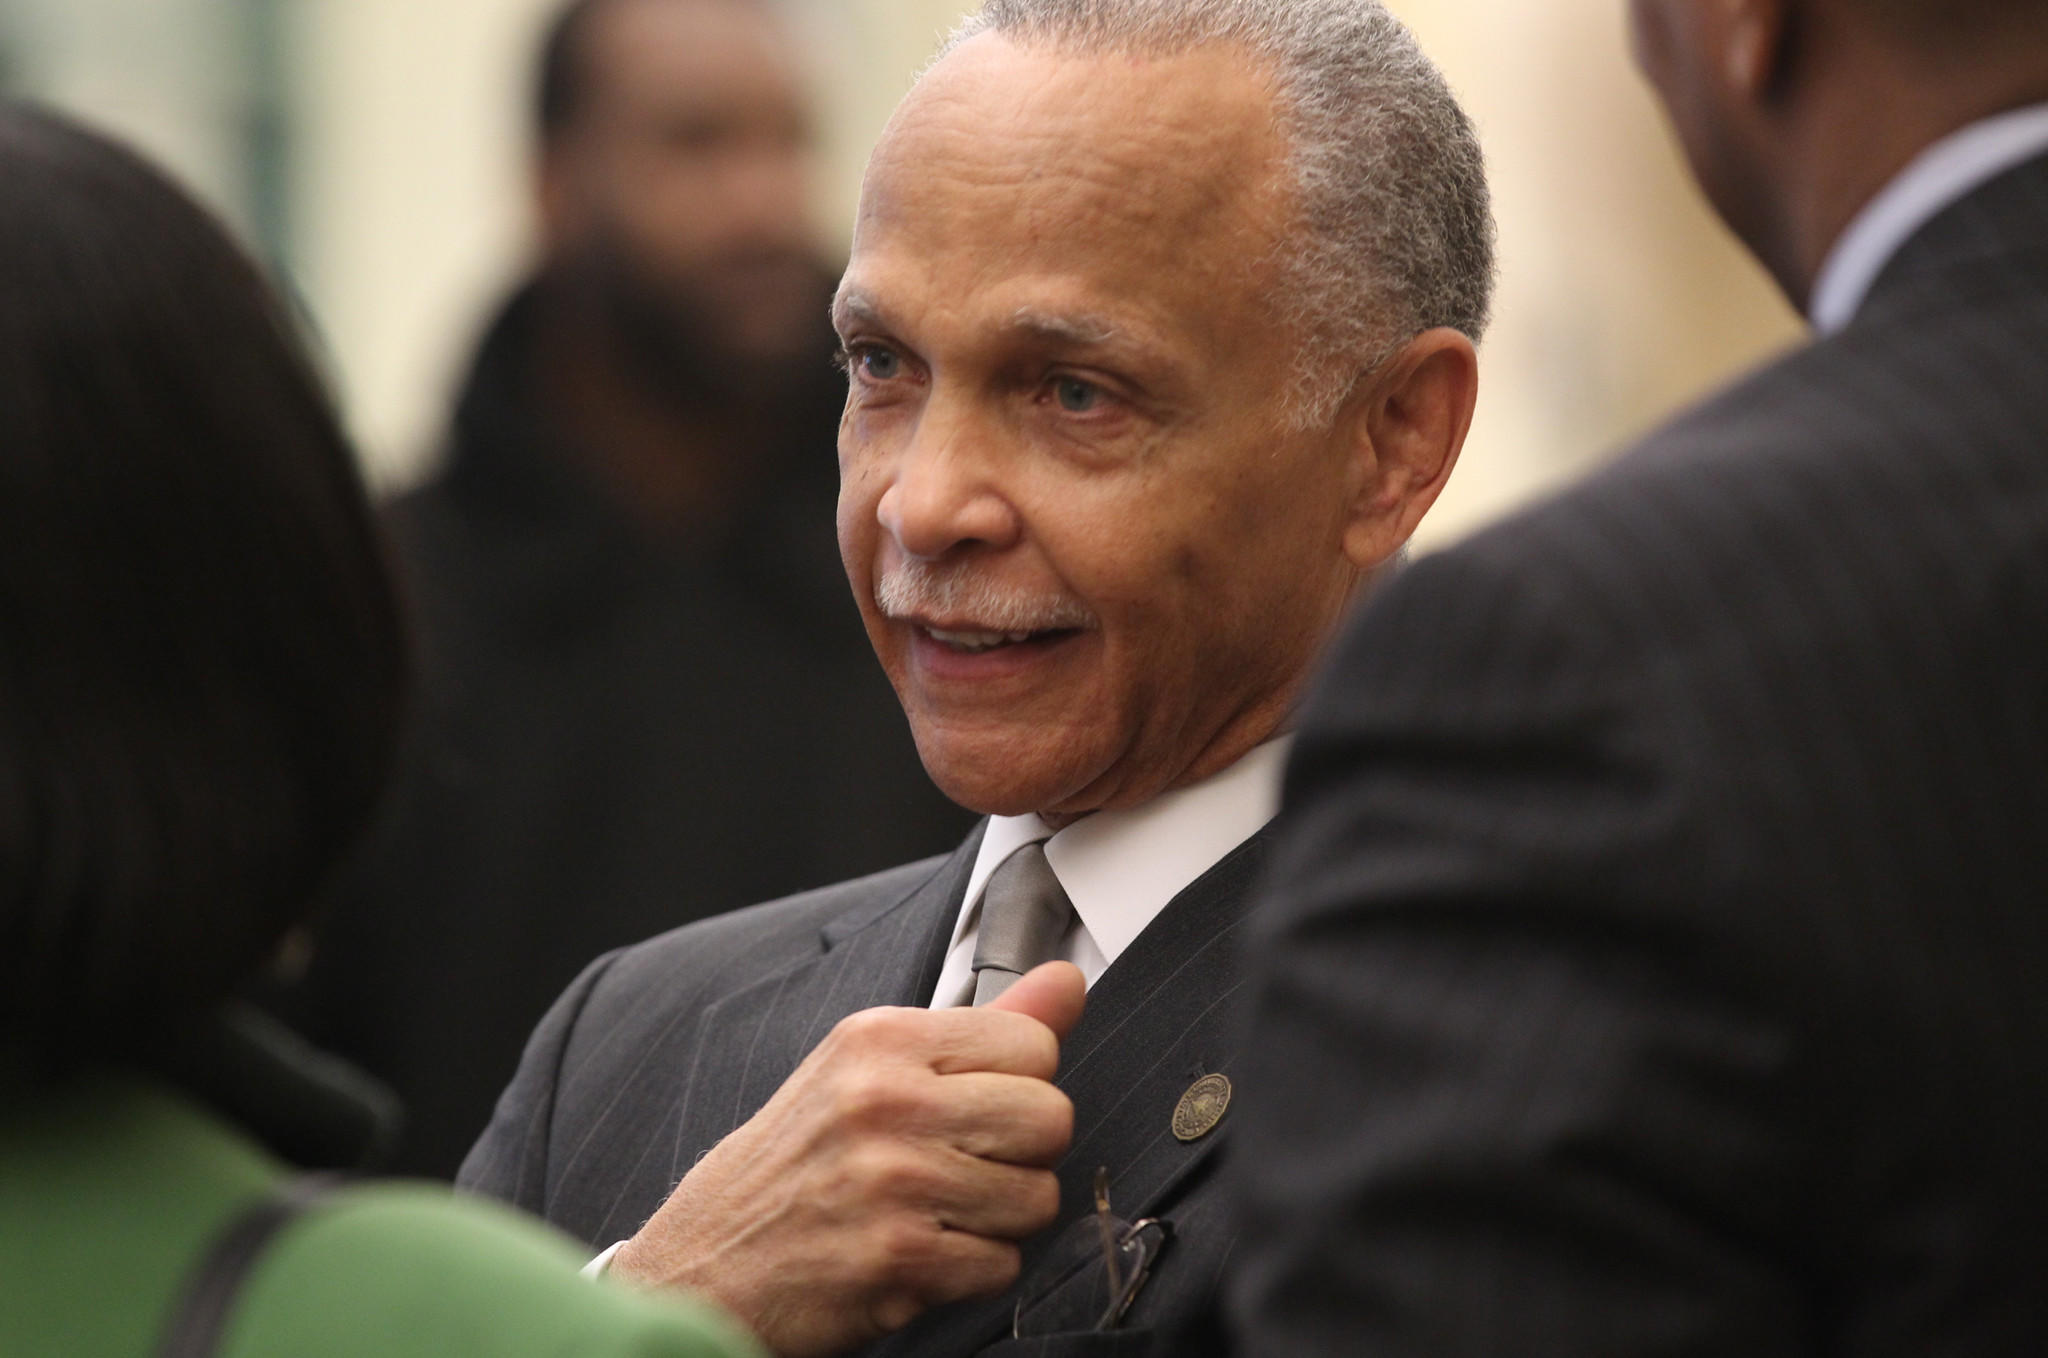 Chicago State University President Wayne Watson talks with attendees at a C.S.U. board meeting in 2013.